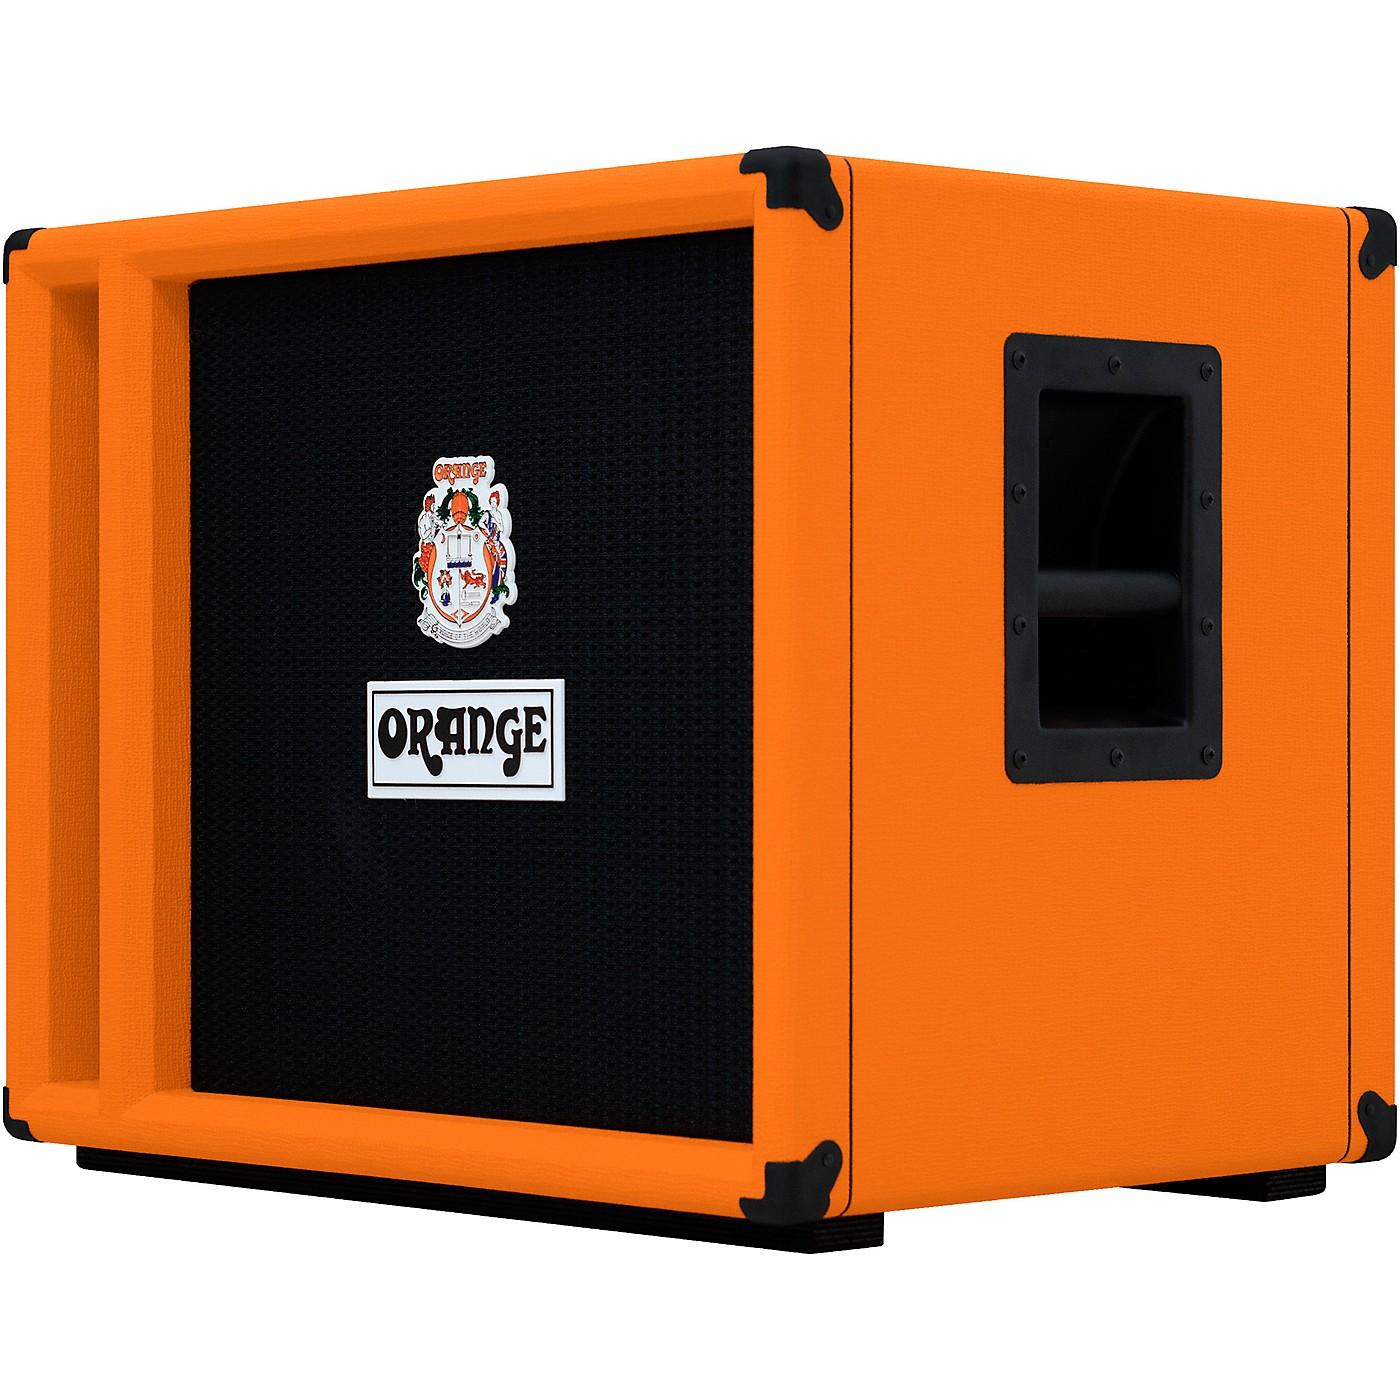 Orange Amplifiers OBC Series OBC115 400W 1x15 Bass Speaker Cabinet thumbnail